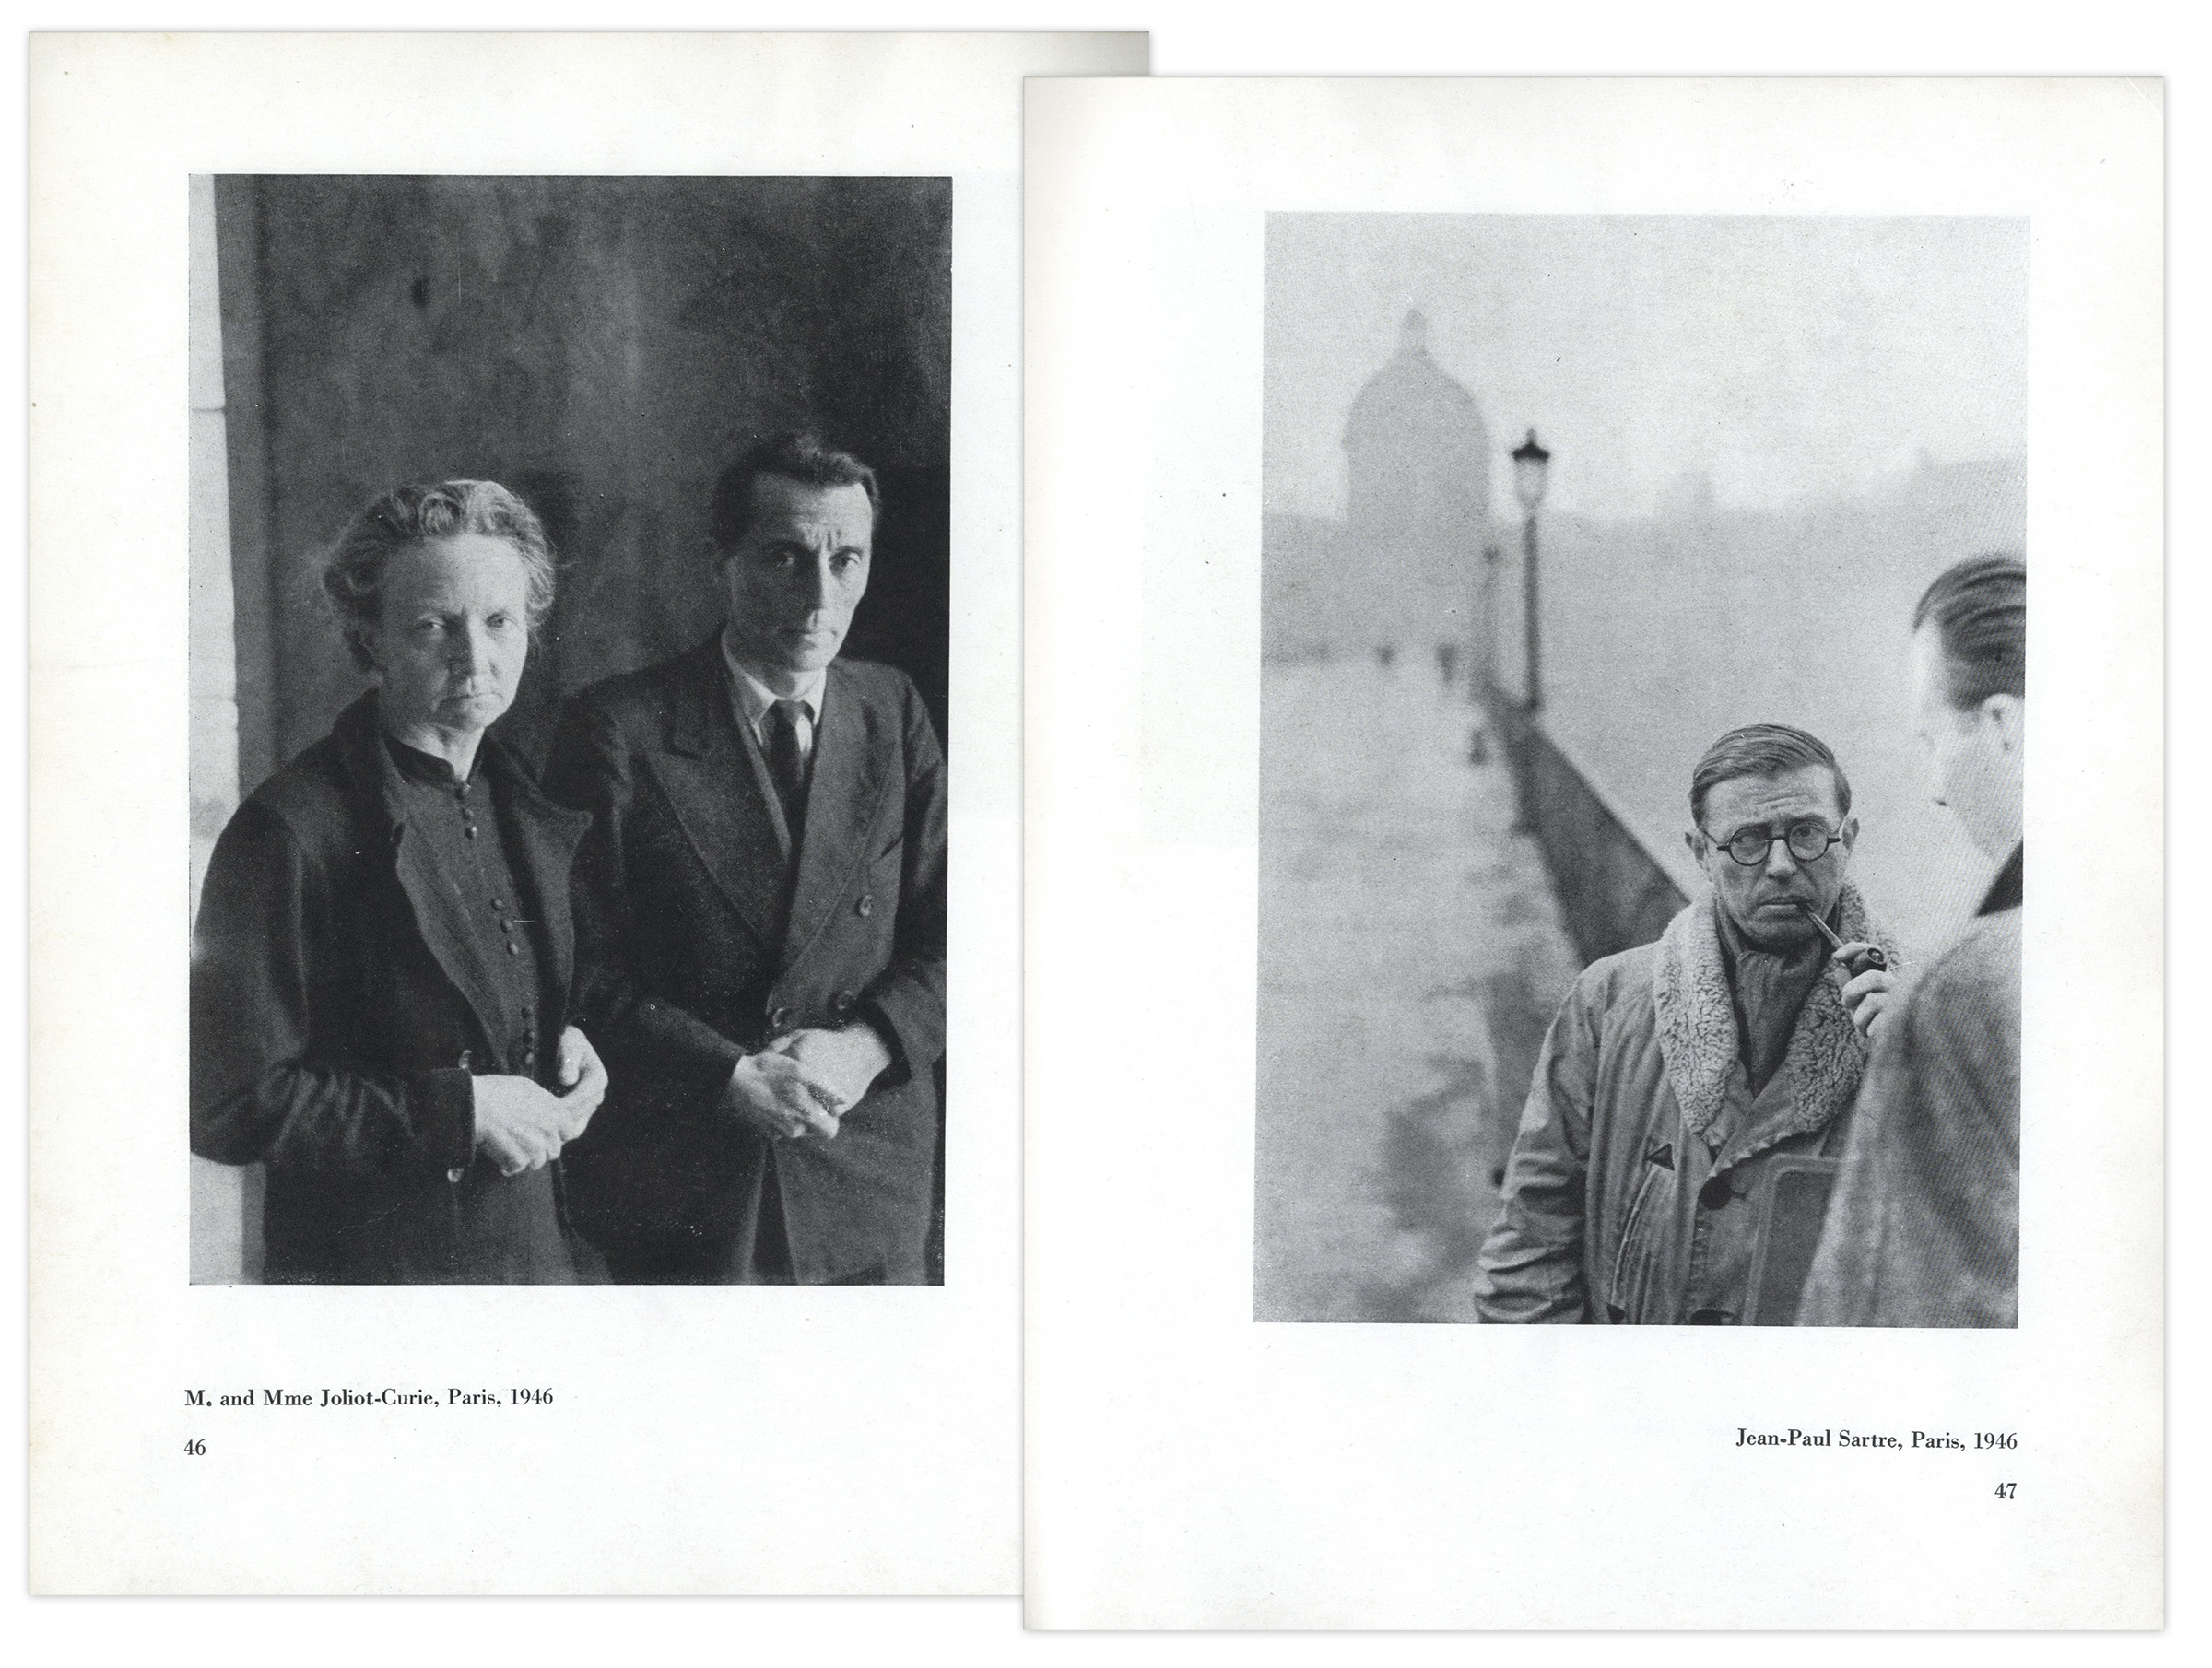 Street photography insights by Henri Cartier-Bresson